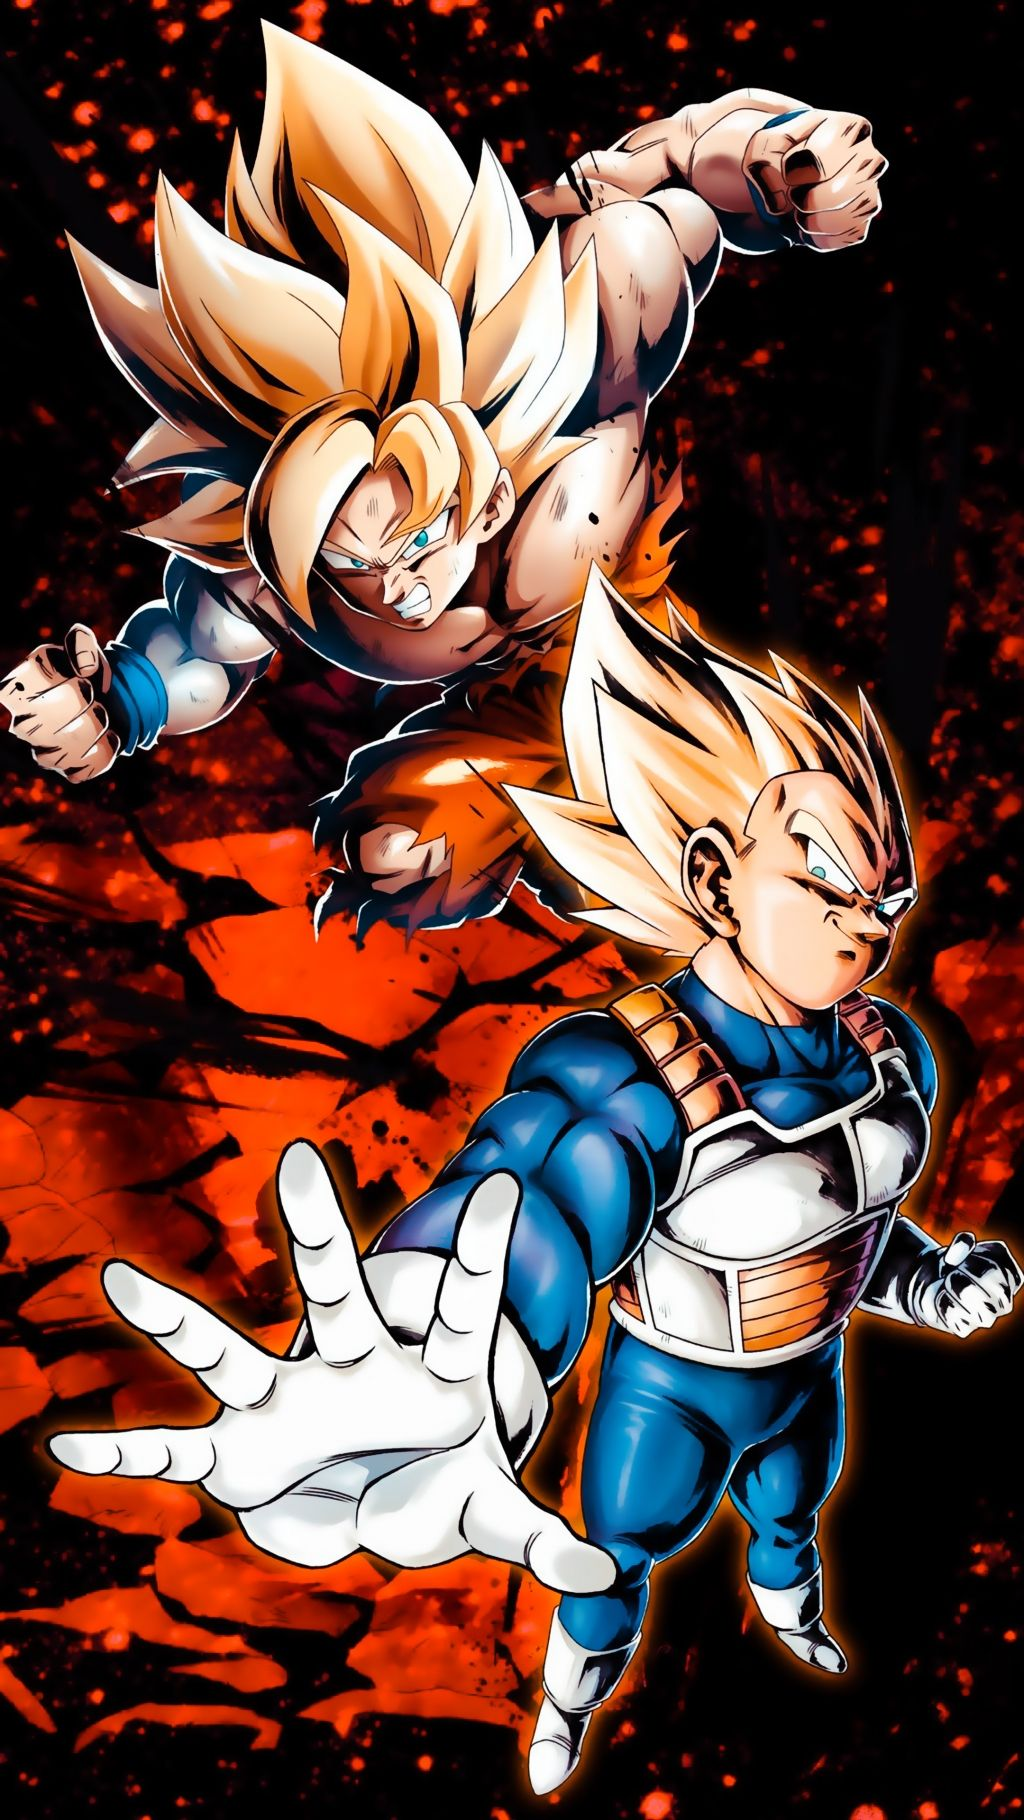 20 4k Wallpapers Of Dbz And Super For Phones In 2020 Anime Dragon Ball Super Dragon Ball Image Anime Dragon Ball